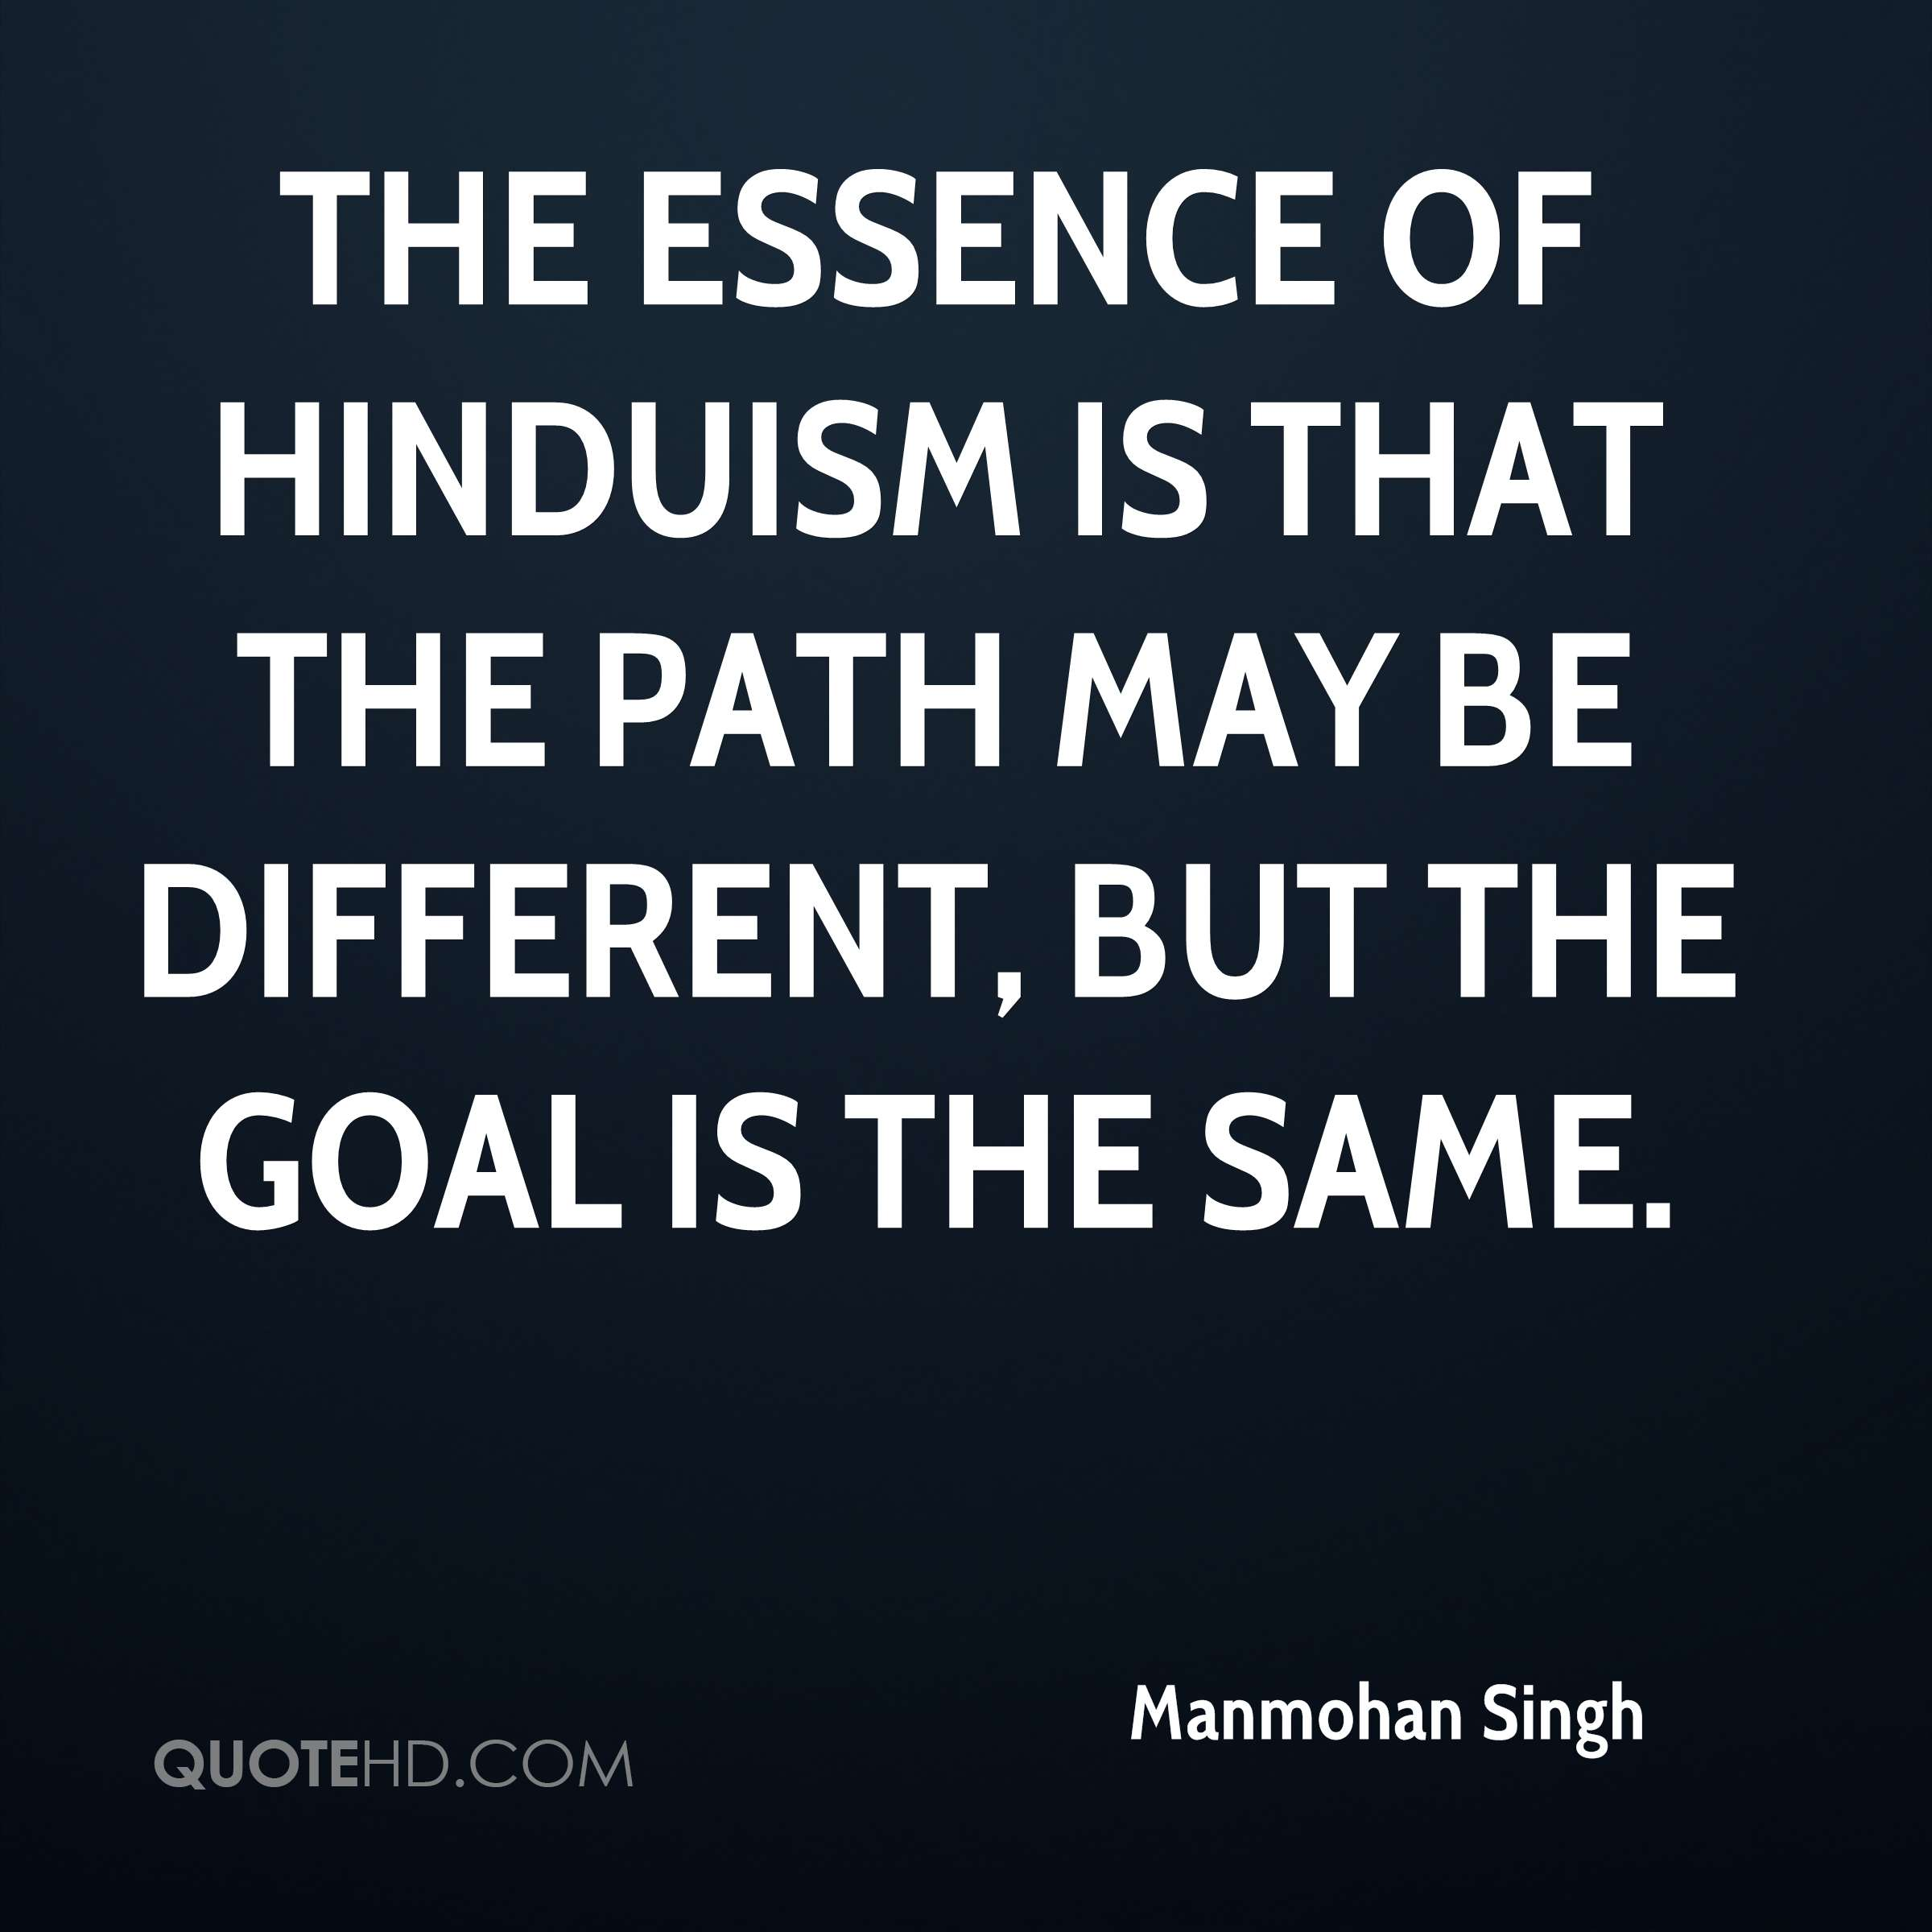 The essence of Hinduism is that the path may be different, but the goal is the same.